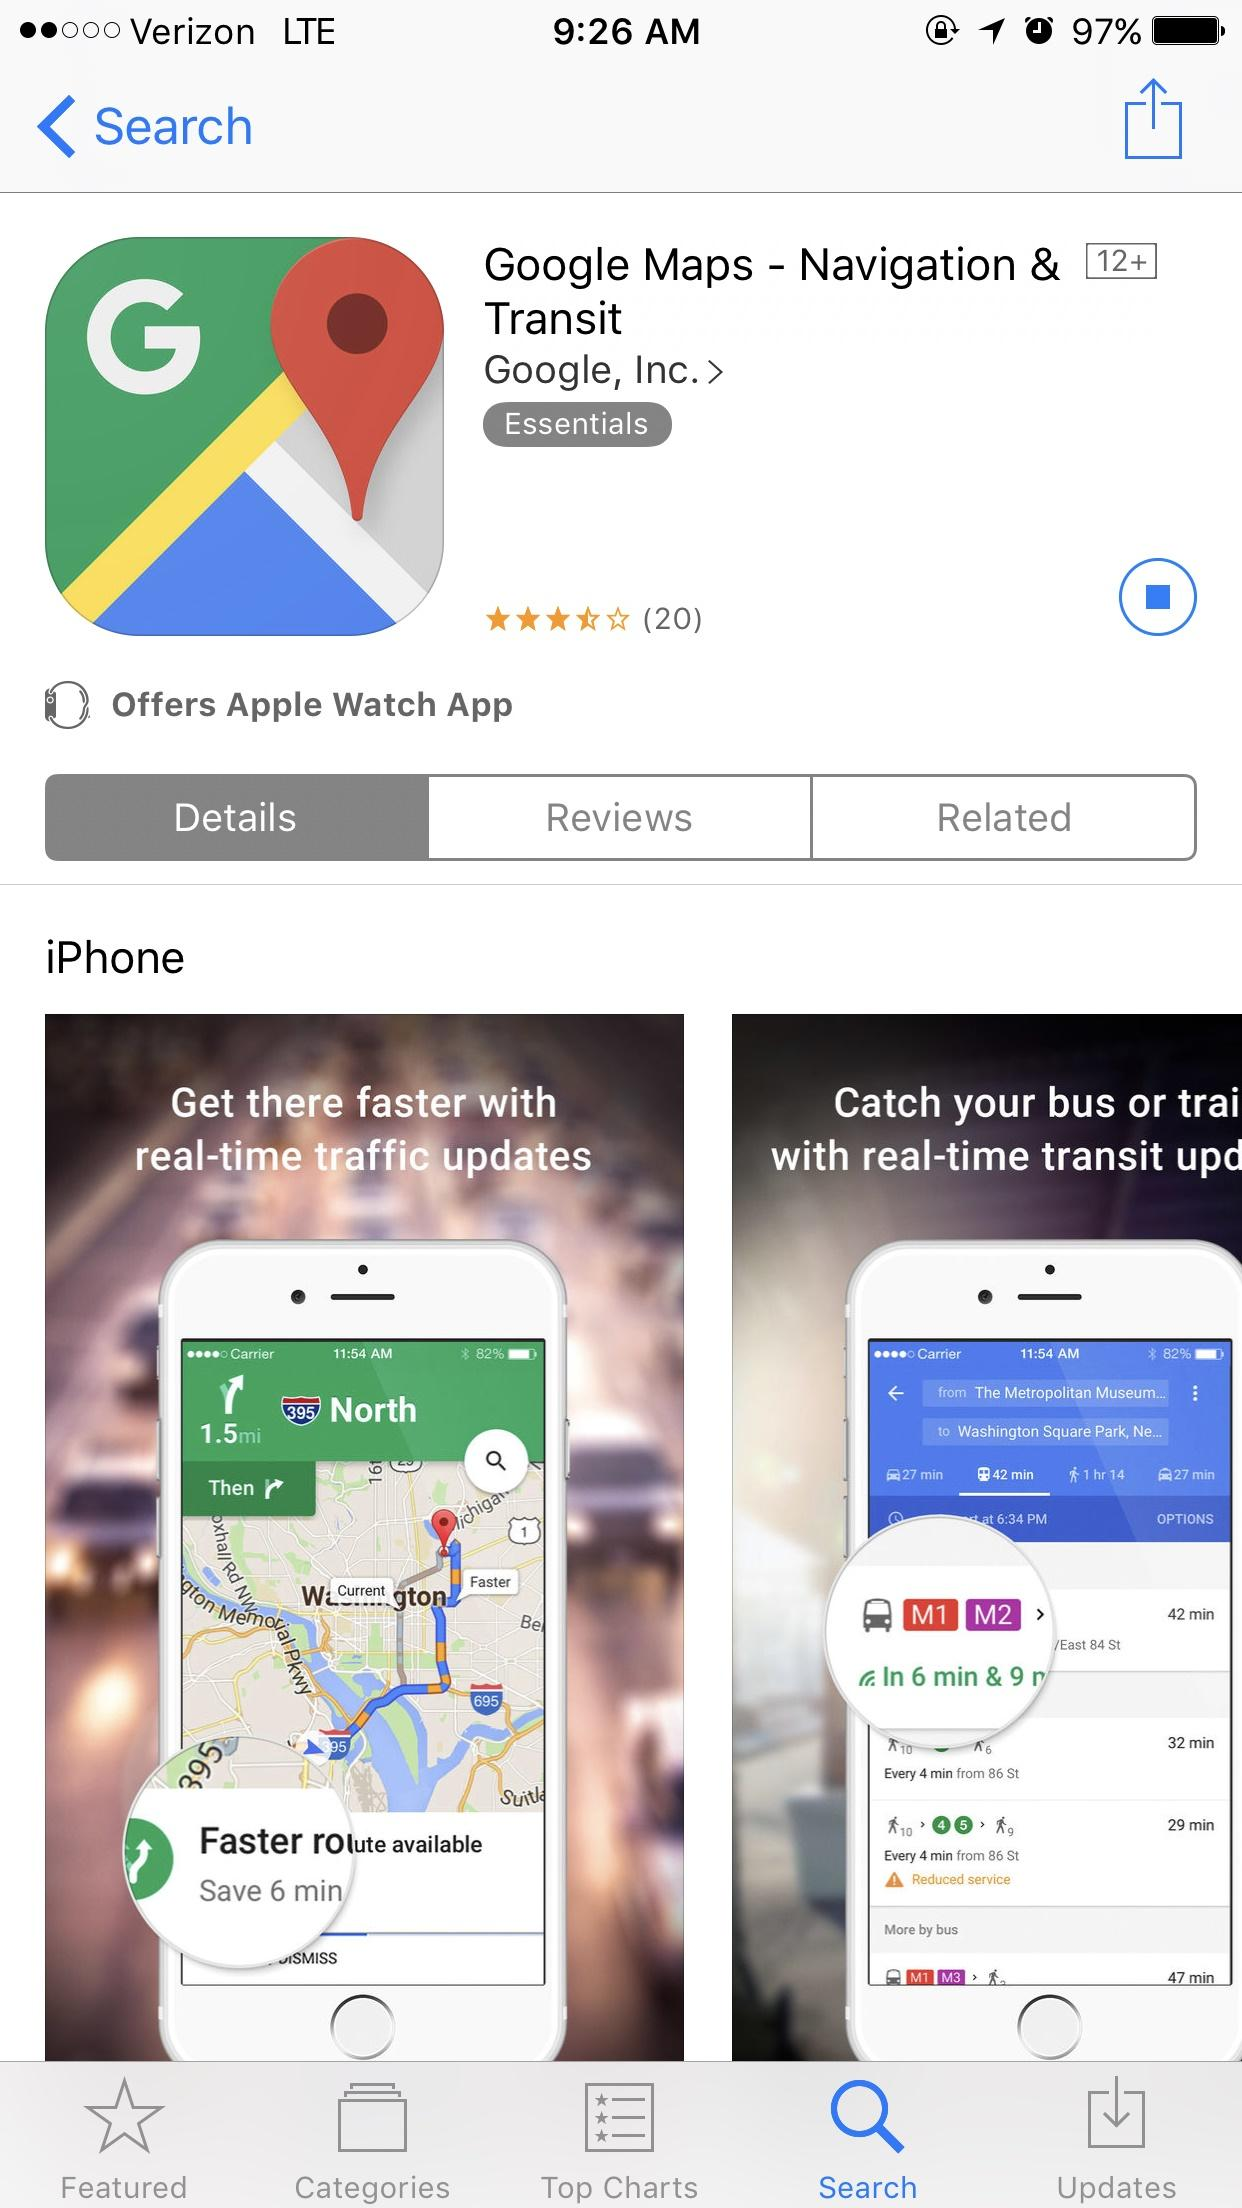 Cannot download Google Maps on iPhone 7 Plus from App Store ... on google links, google annual report, google privacy, eclipse download, google articles, google social media, google services, google background, google facebook, google help, linux download, google desktop site, google contact, google apps button, google chrome, google icon download,